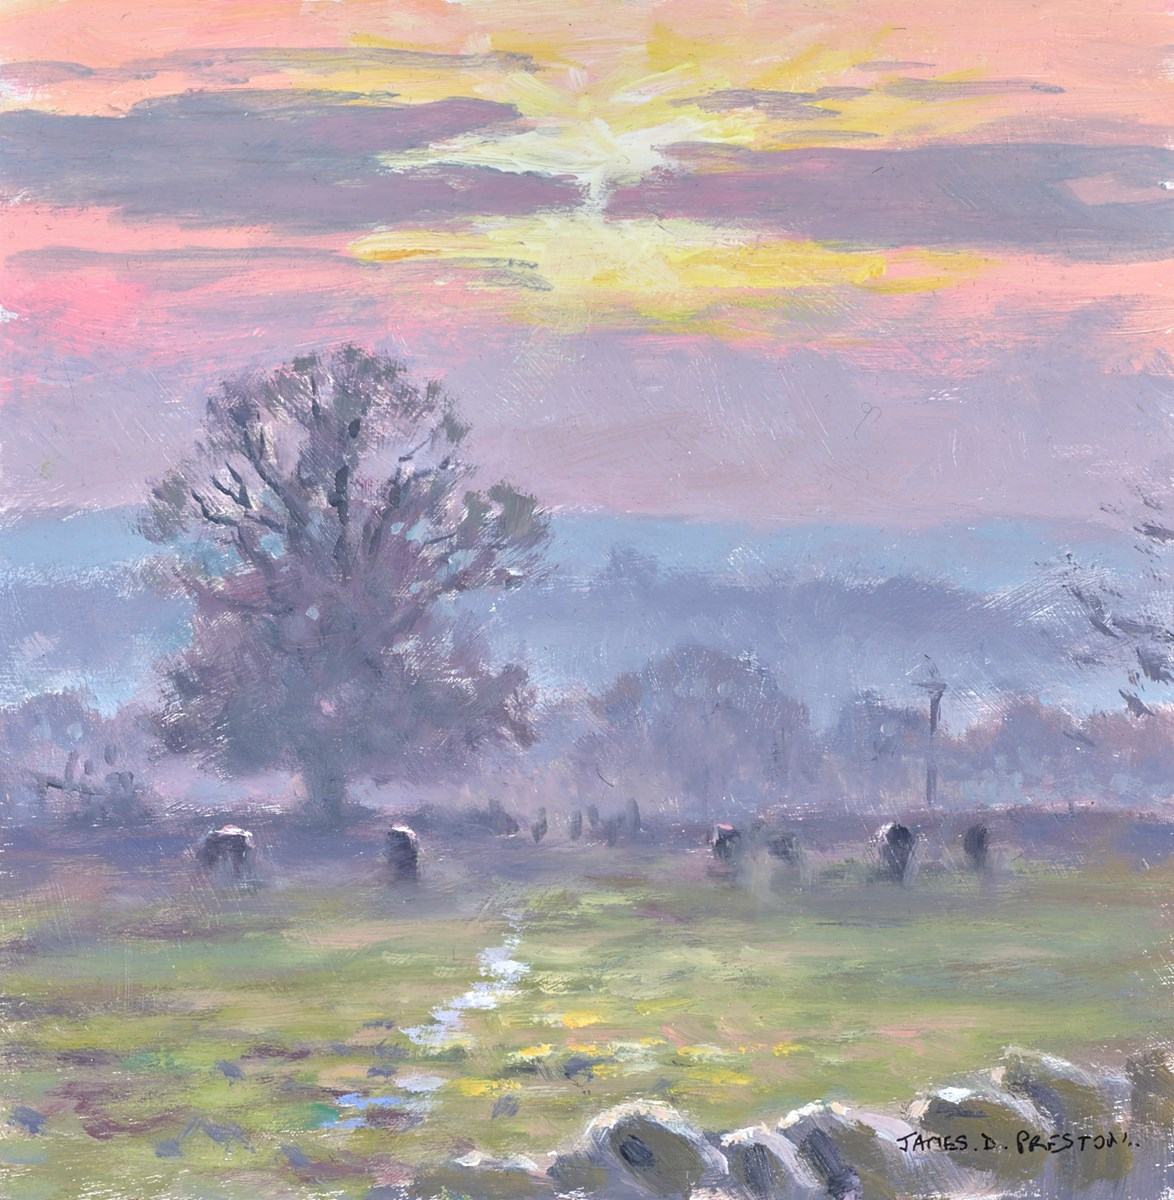 Sunrise II by james preston -  sized 8x8 inches. Available from Whitewall Galleries